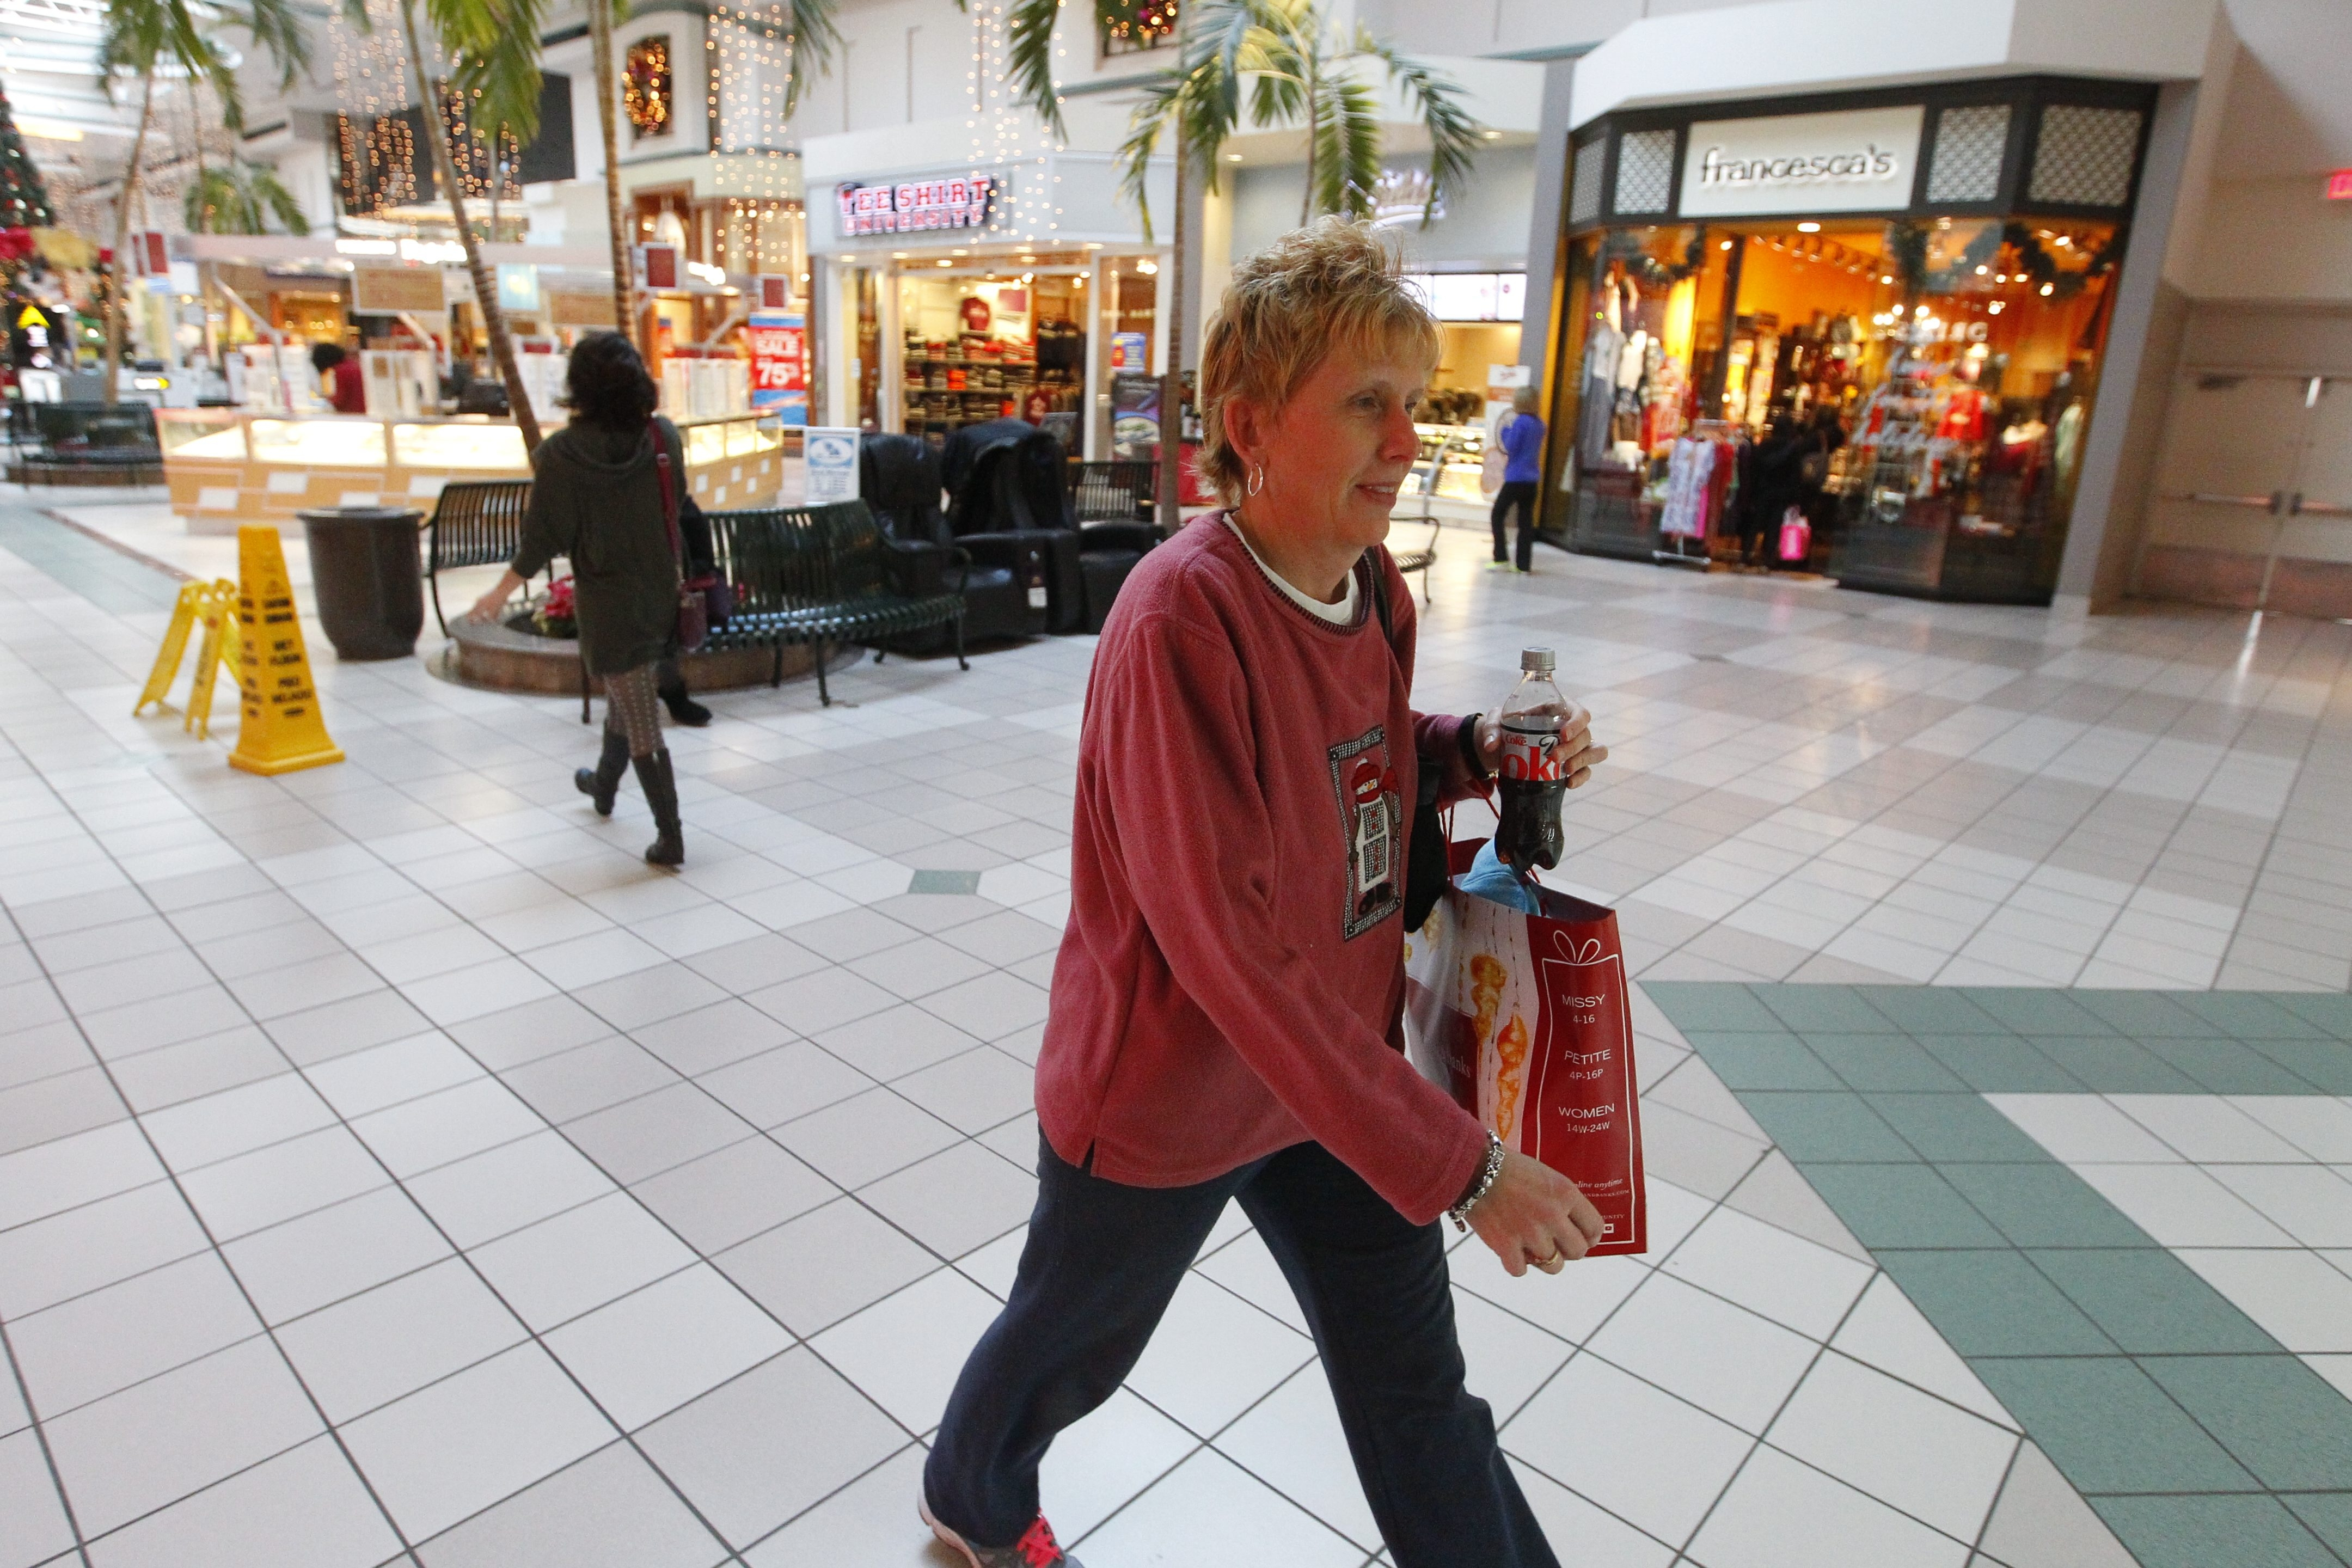 Lori Millace returns a item that still had a security tag on it at the Boulevard Mall in Amherst on Dec. 26.